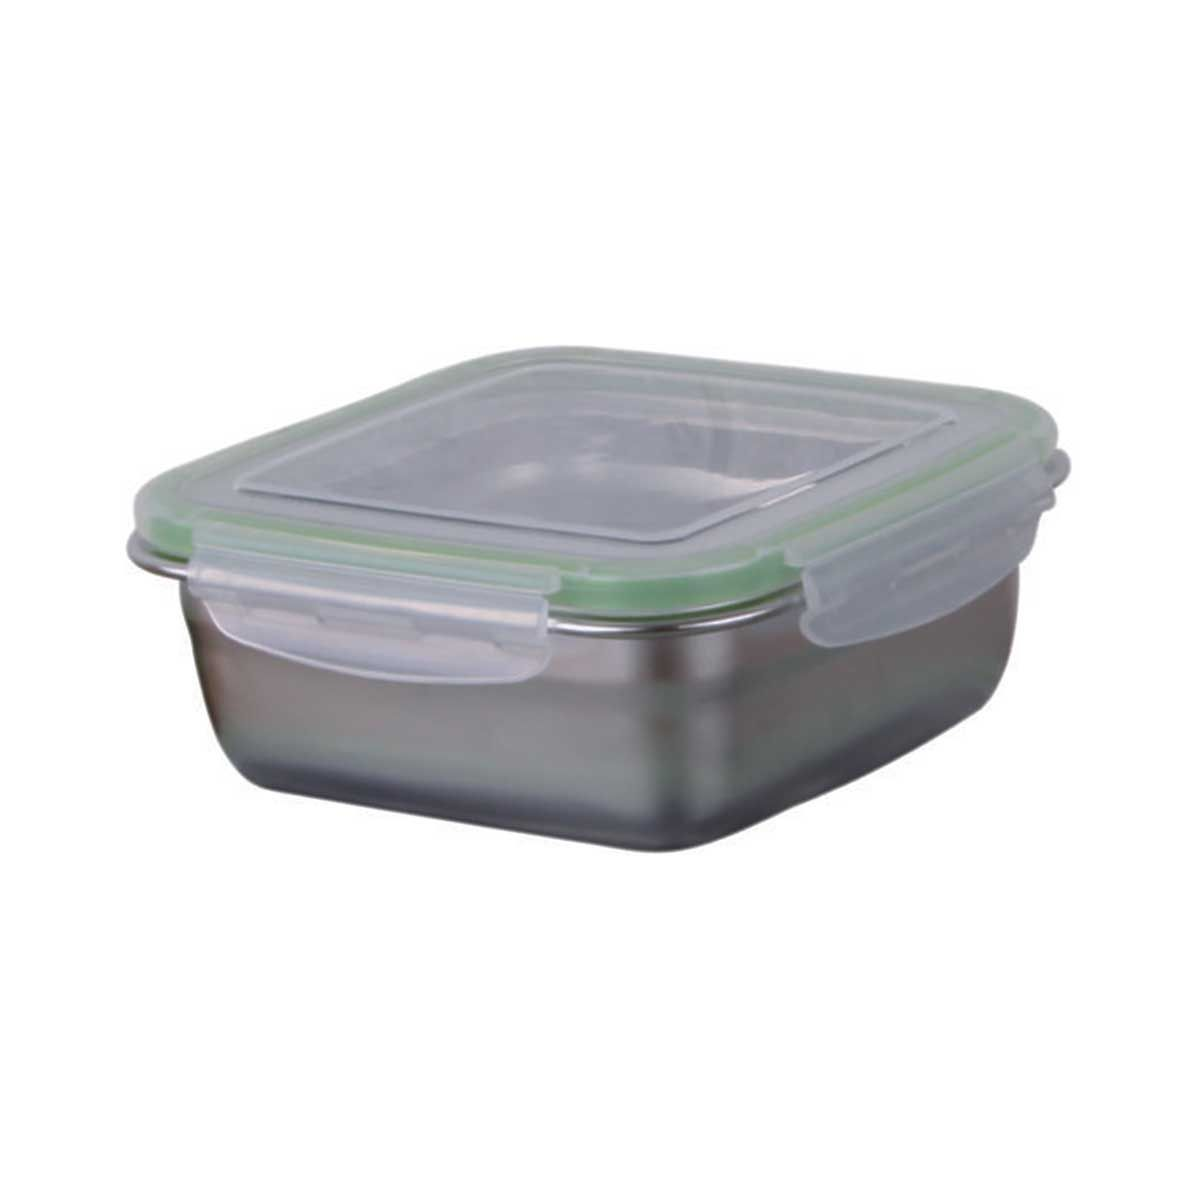 Signoraware 3723 Modular Square Steel Container With Lid (750 ml)